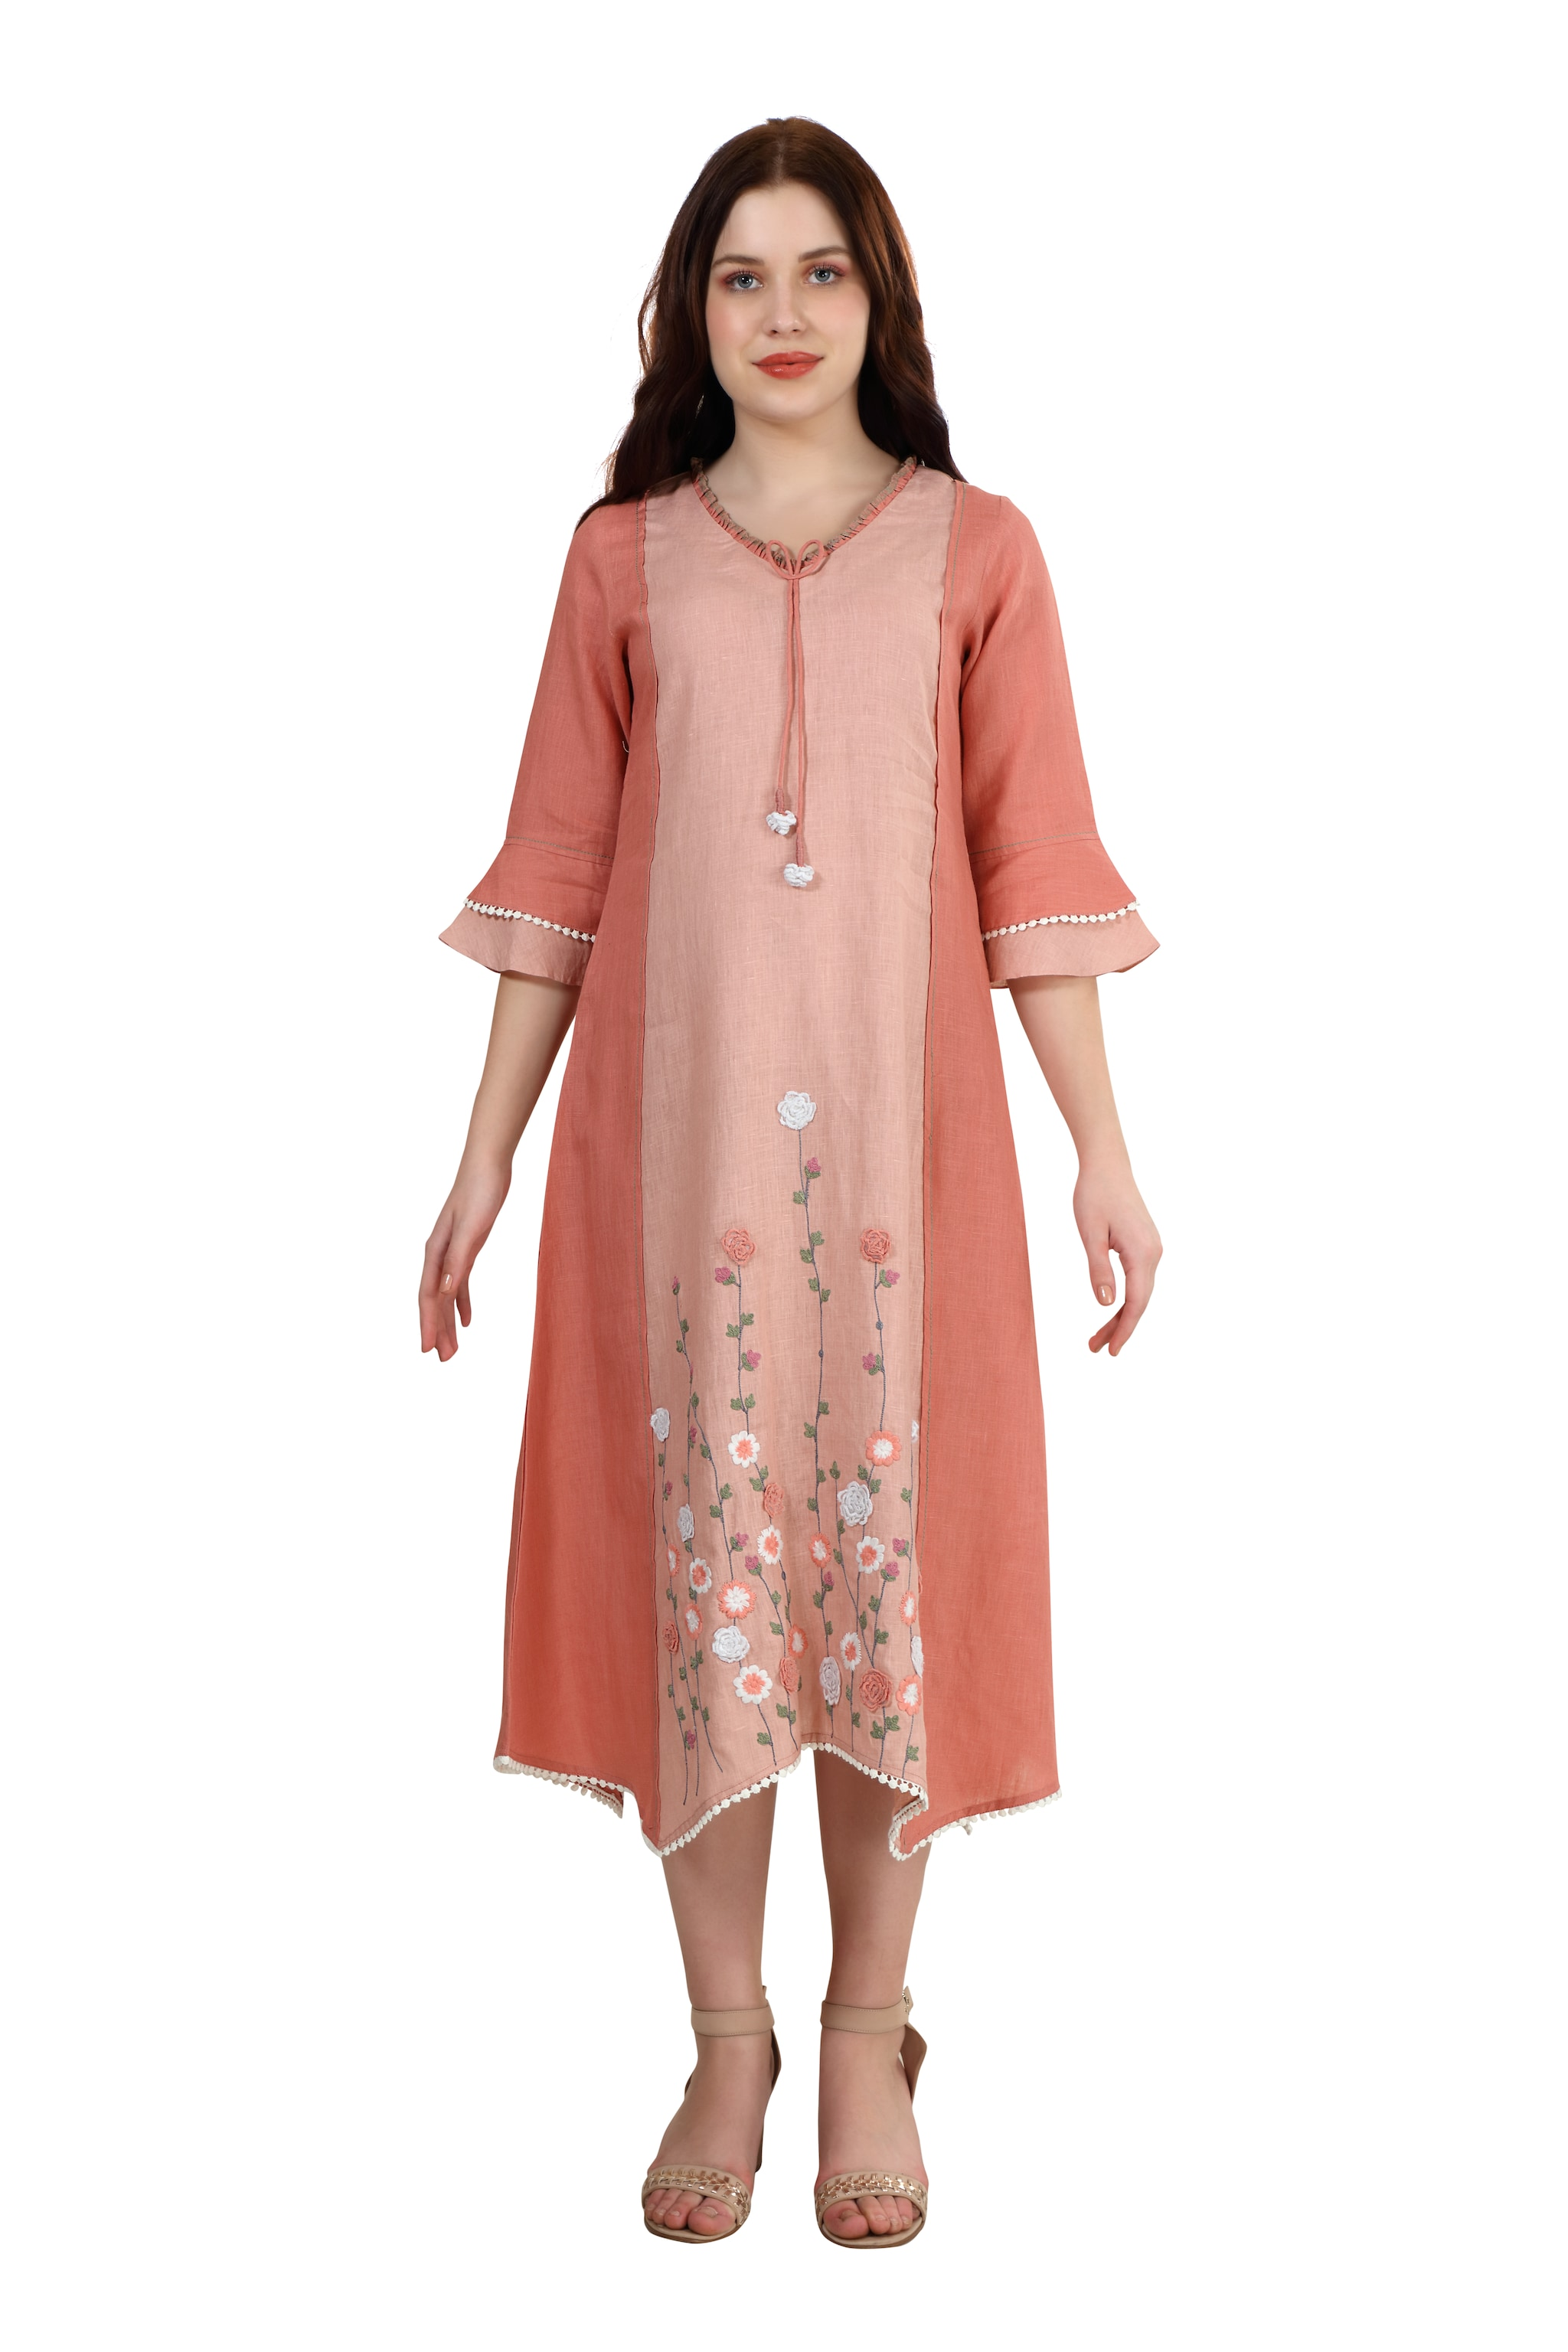 202088 Shades Of Rose Engineered Embroidery Linen Dress (XS,Rose)